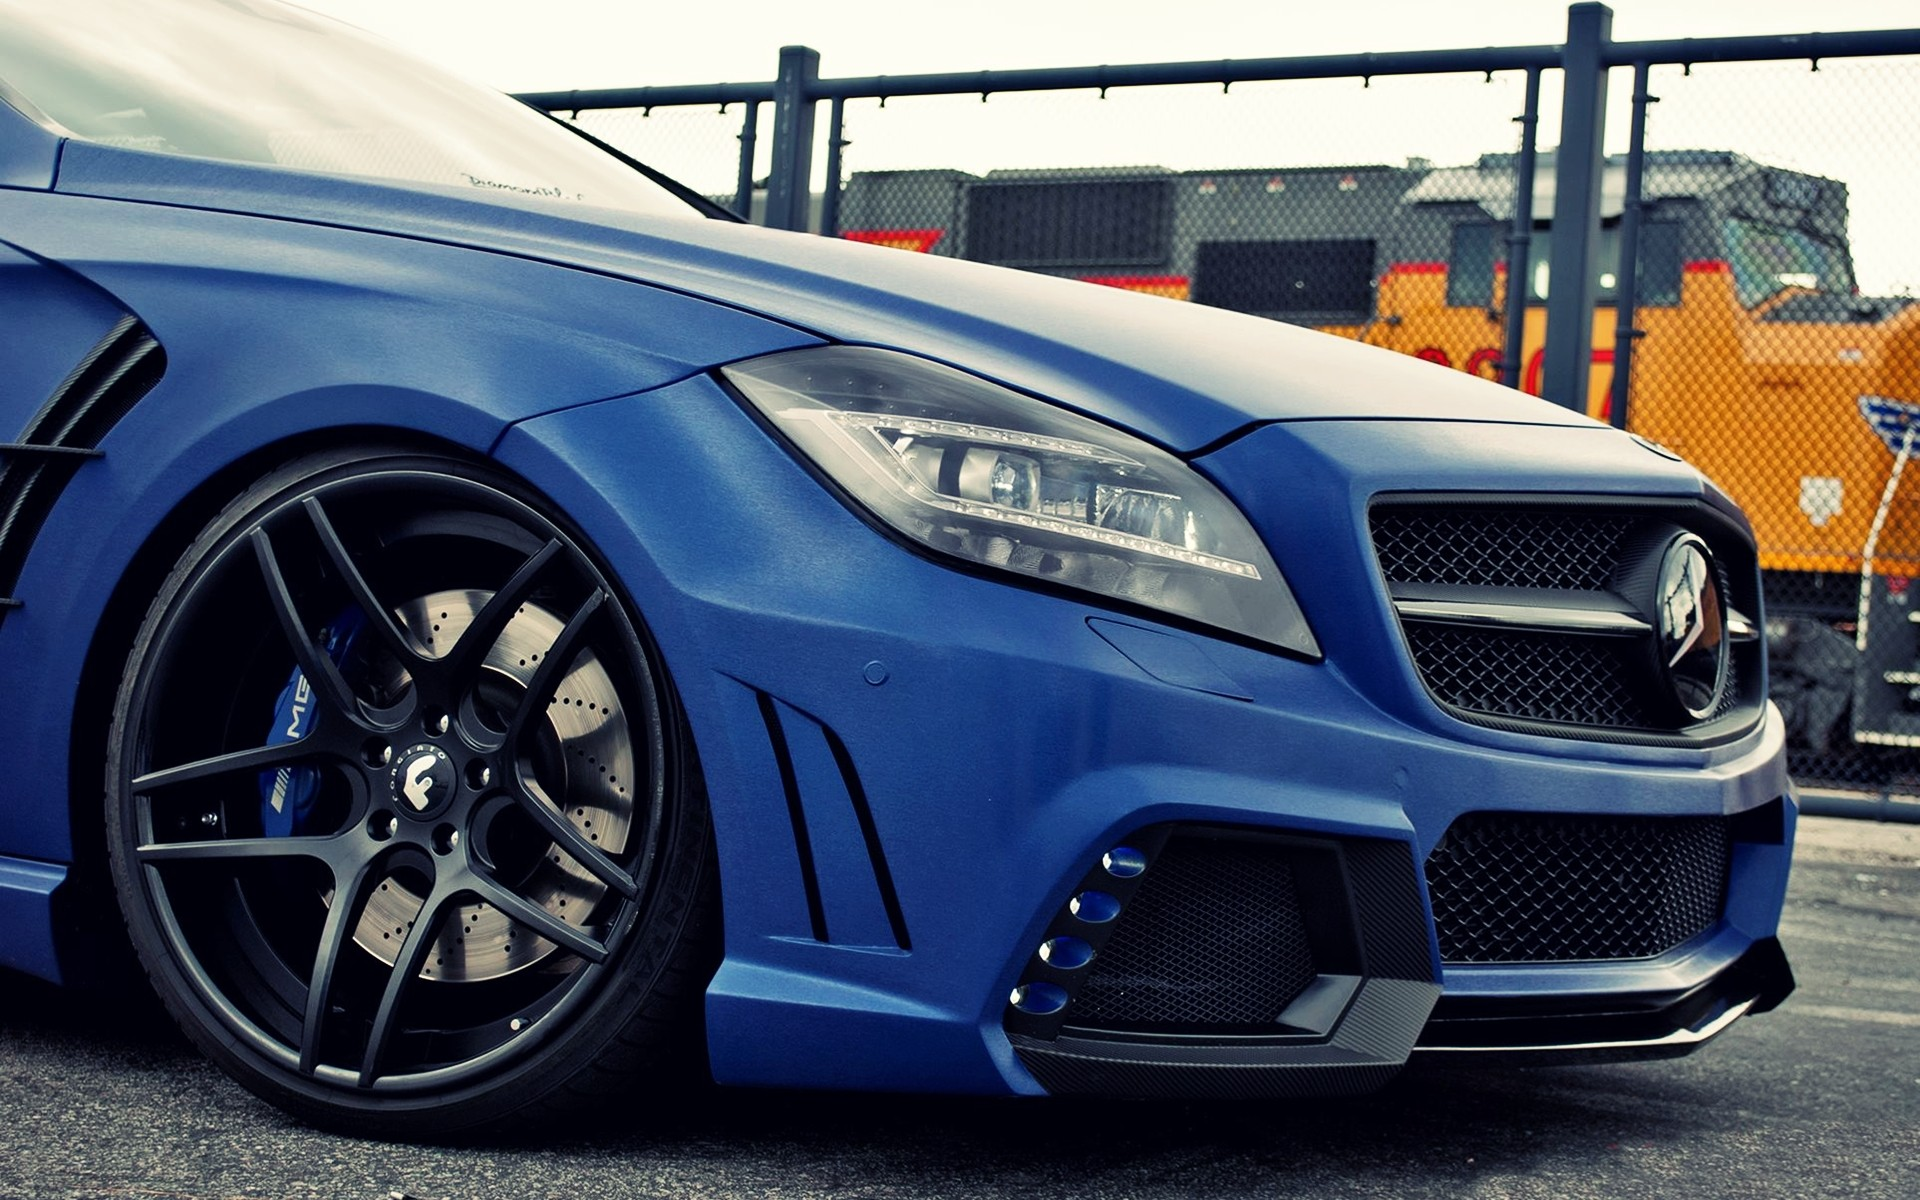 C63 Amg Coupe Iphone X Wallpaper Blue Mercedes Benz Cls 63 Amg Section Wallpapers Blue